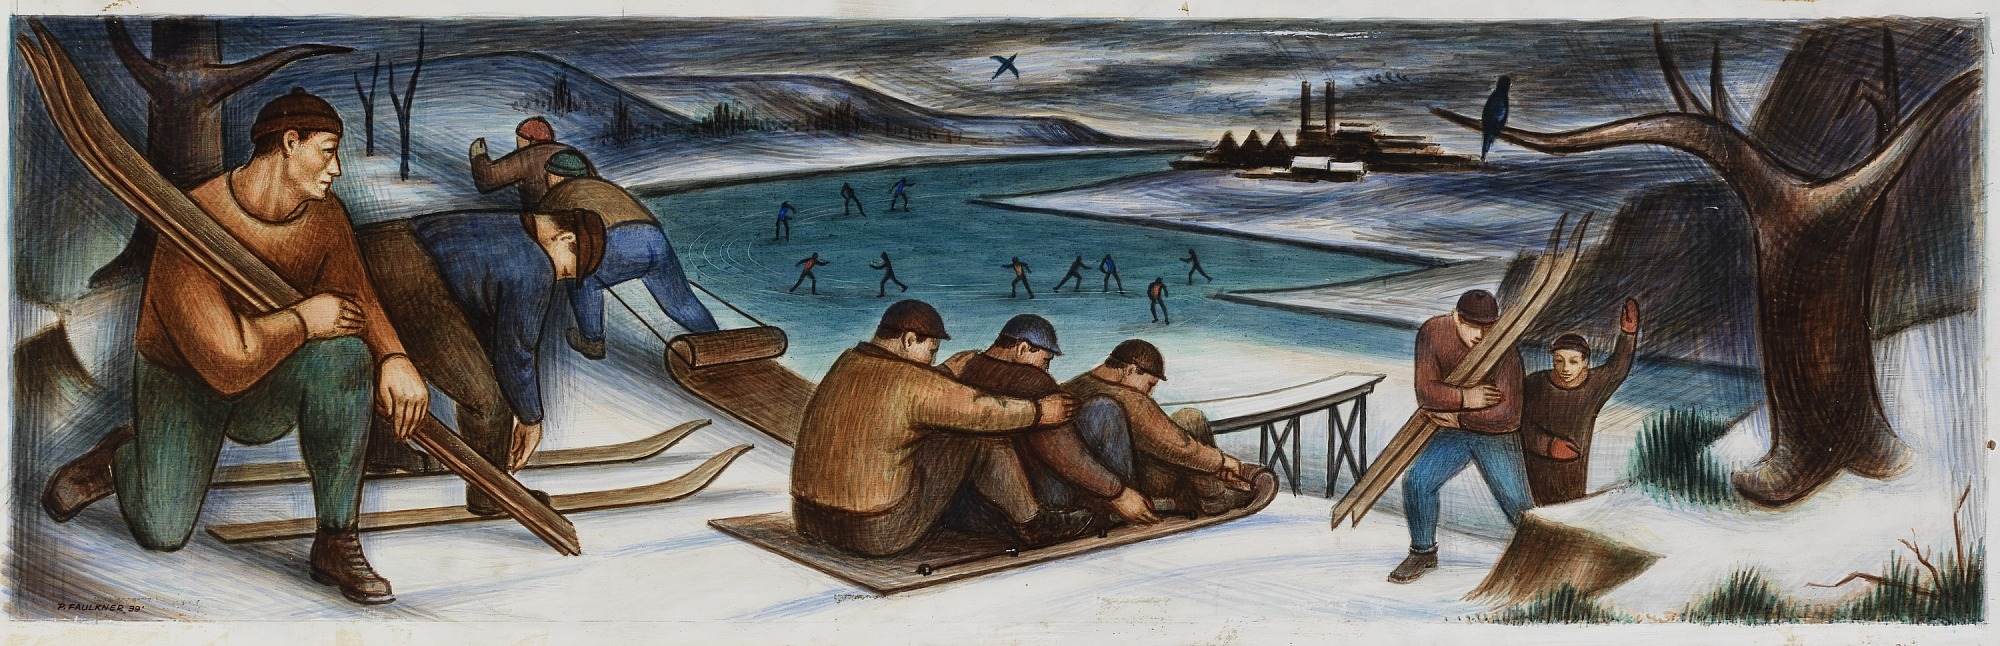 images for Winter Sports (mural study, Kewaunee, Wisconsin Post Office)